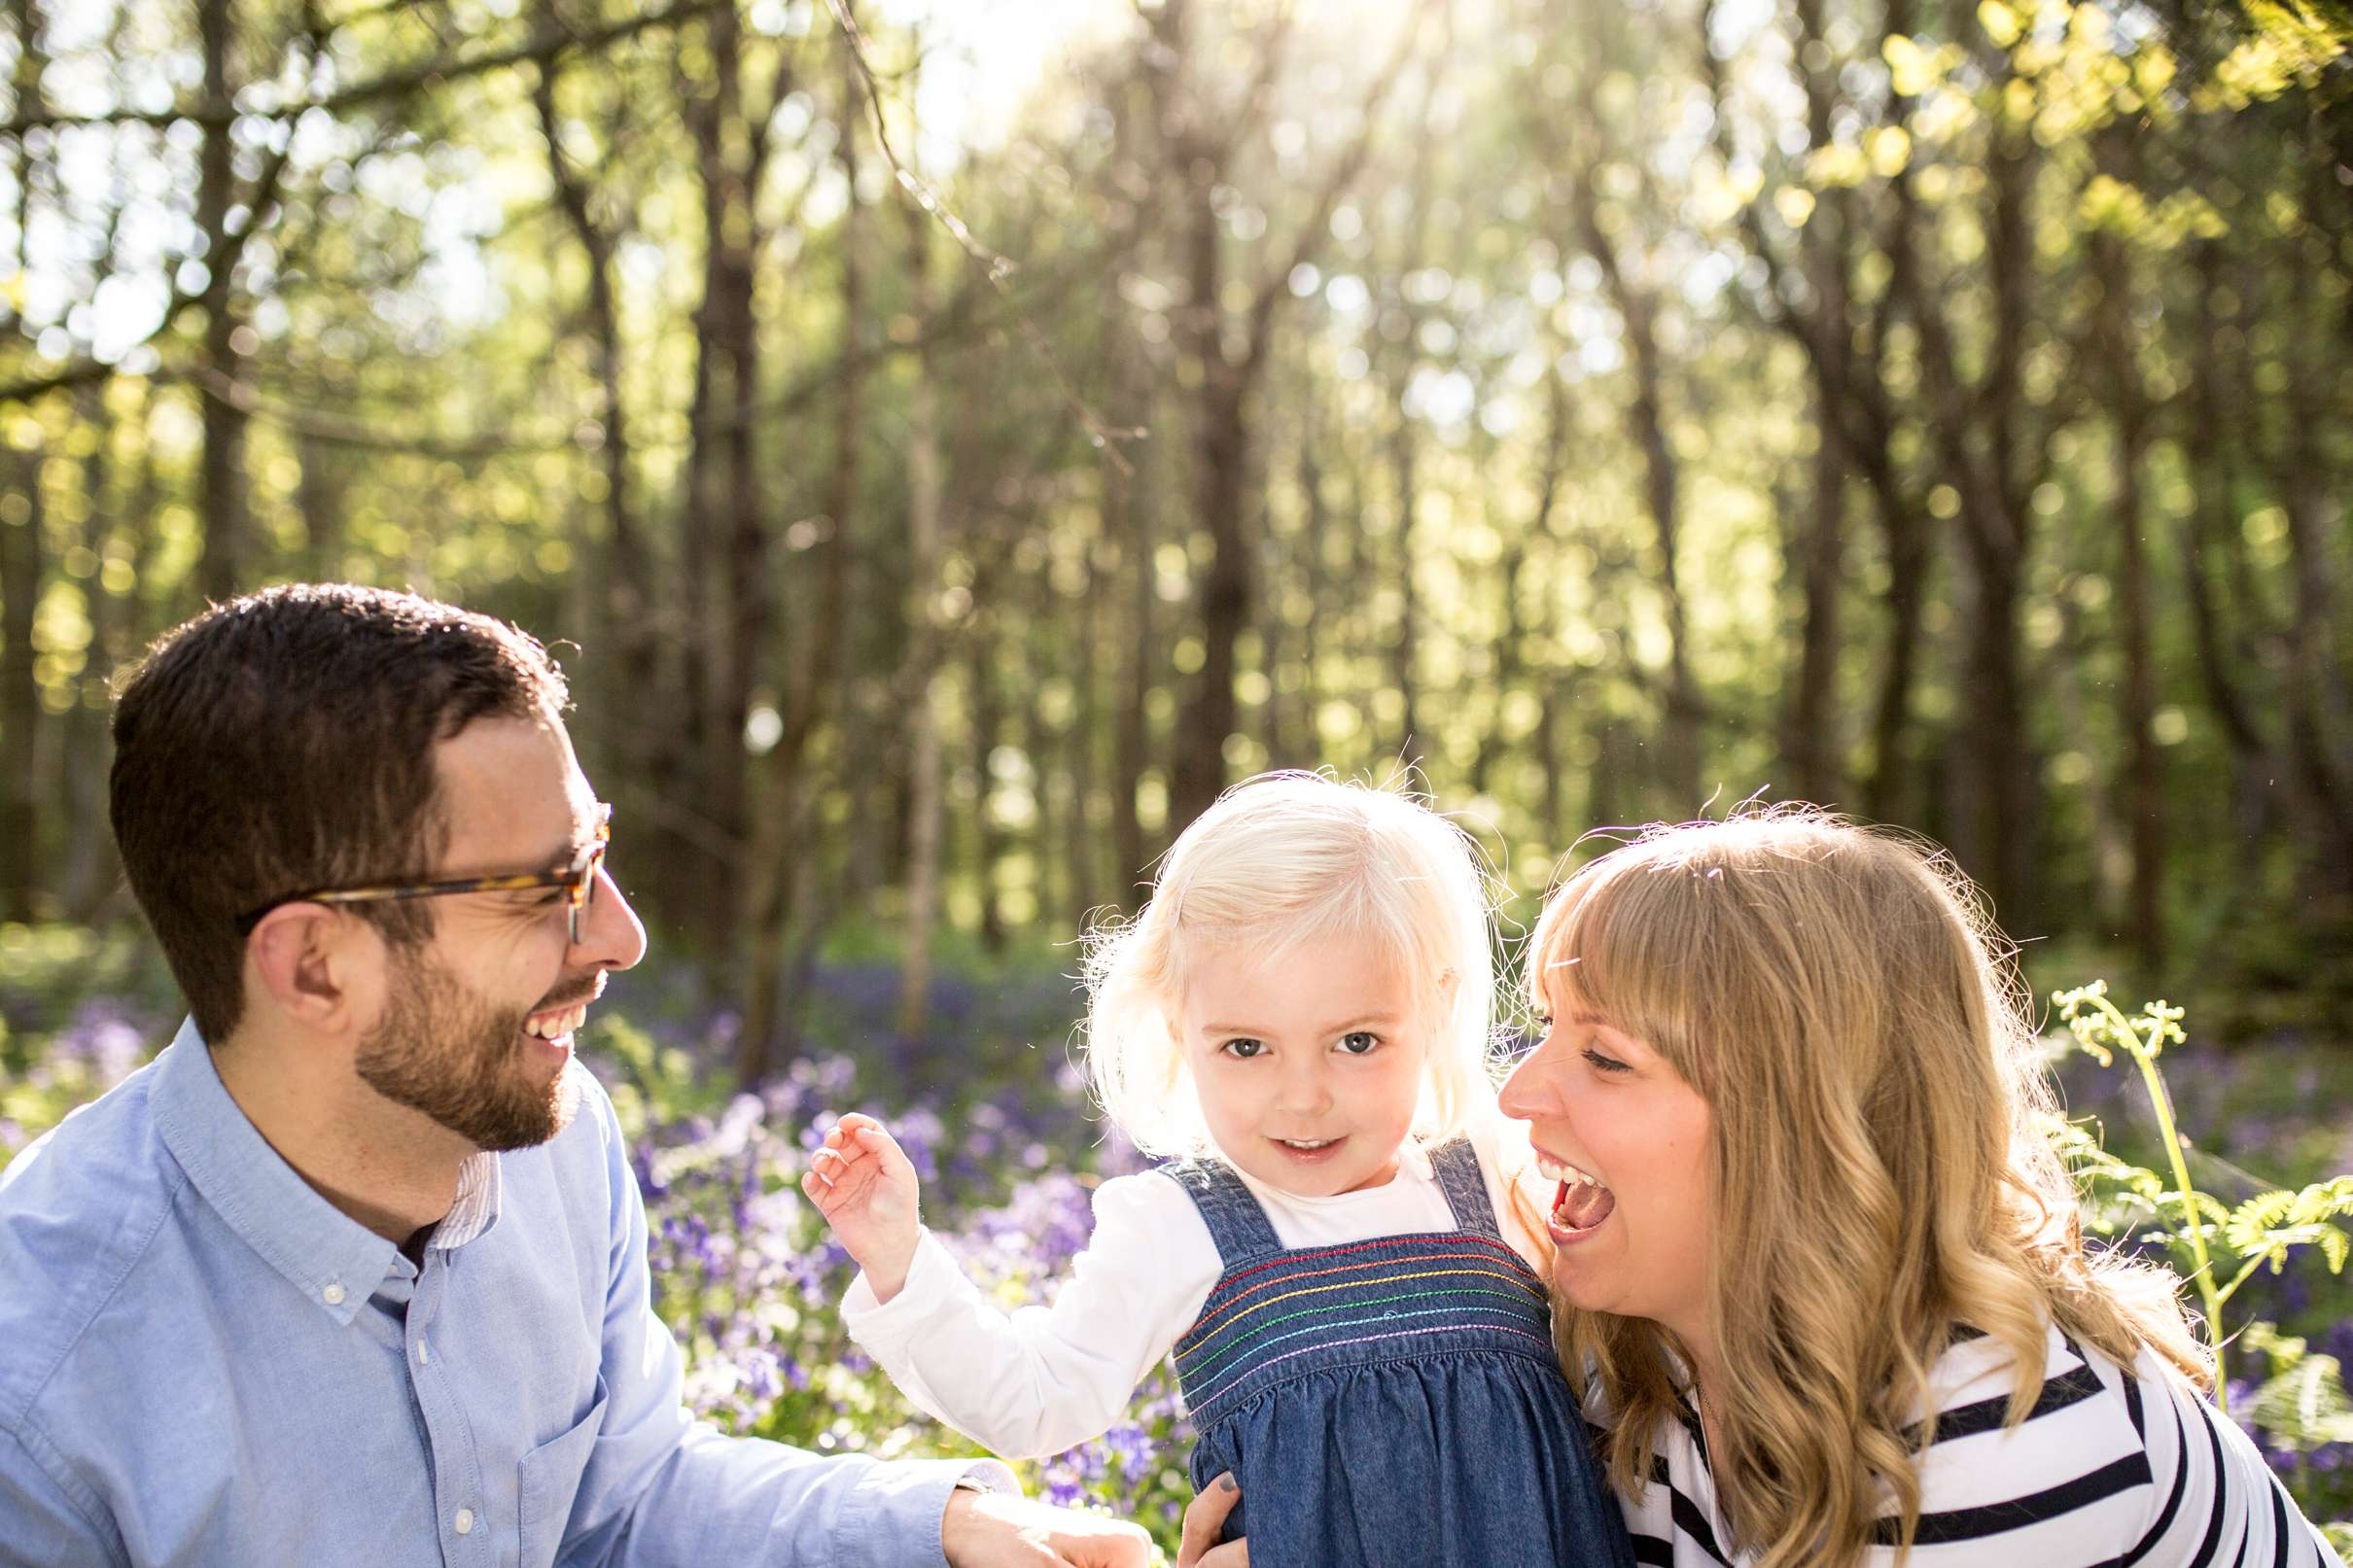 A portrait photo of a family in the woods